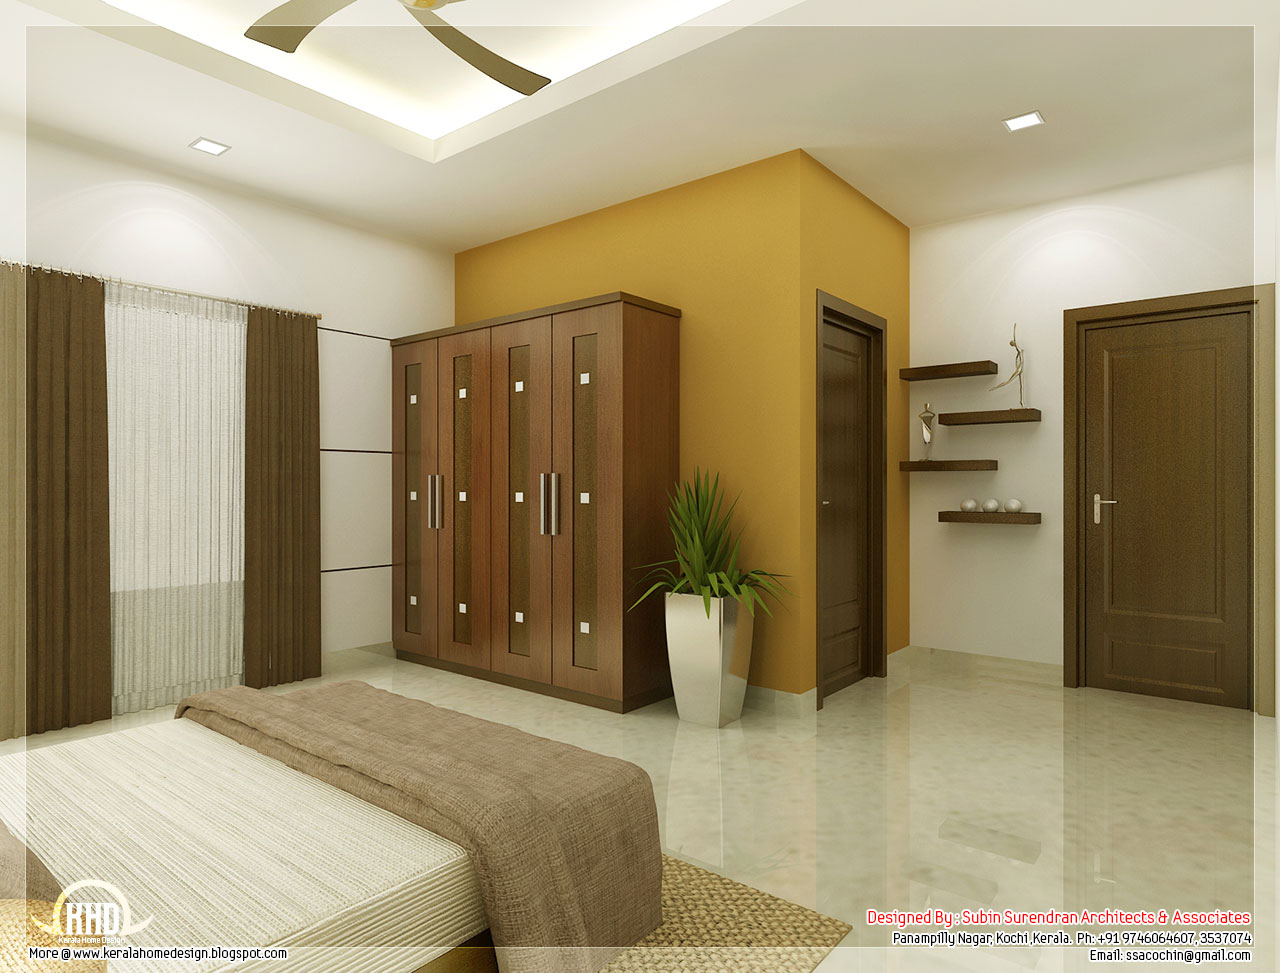 Remarkable India Interior Design Bedroom Ideas 1280 x 973 · 197 kB · jpeg